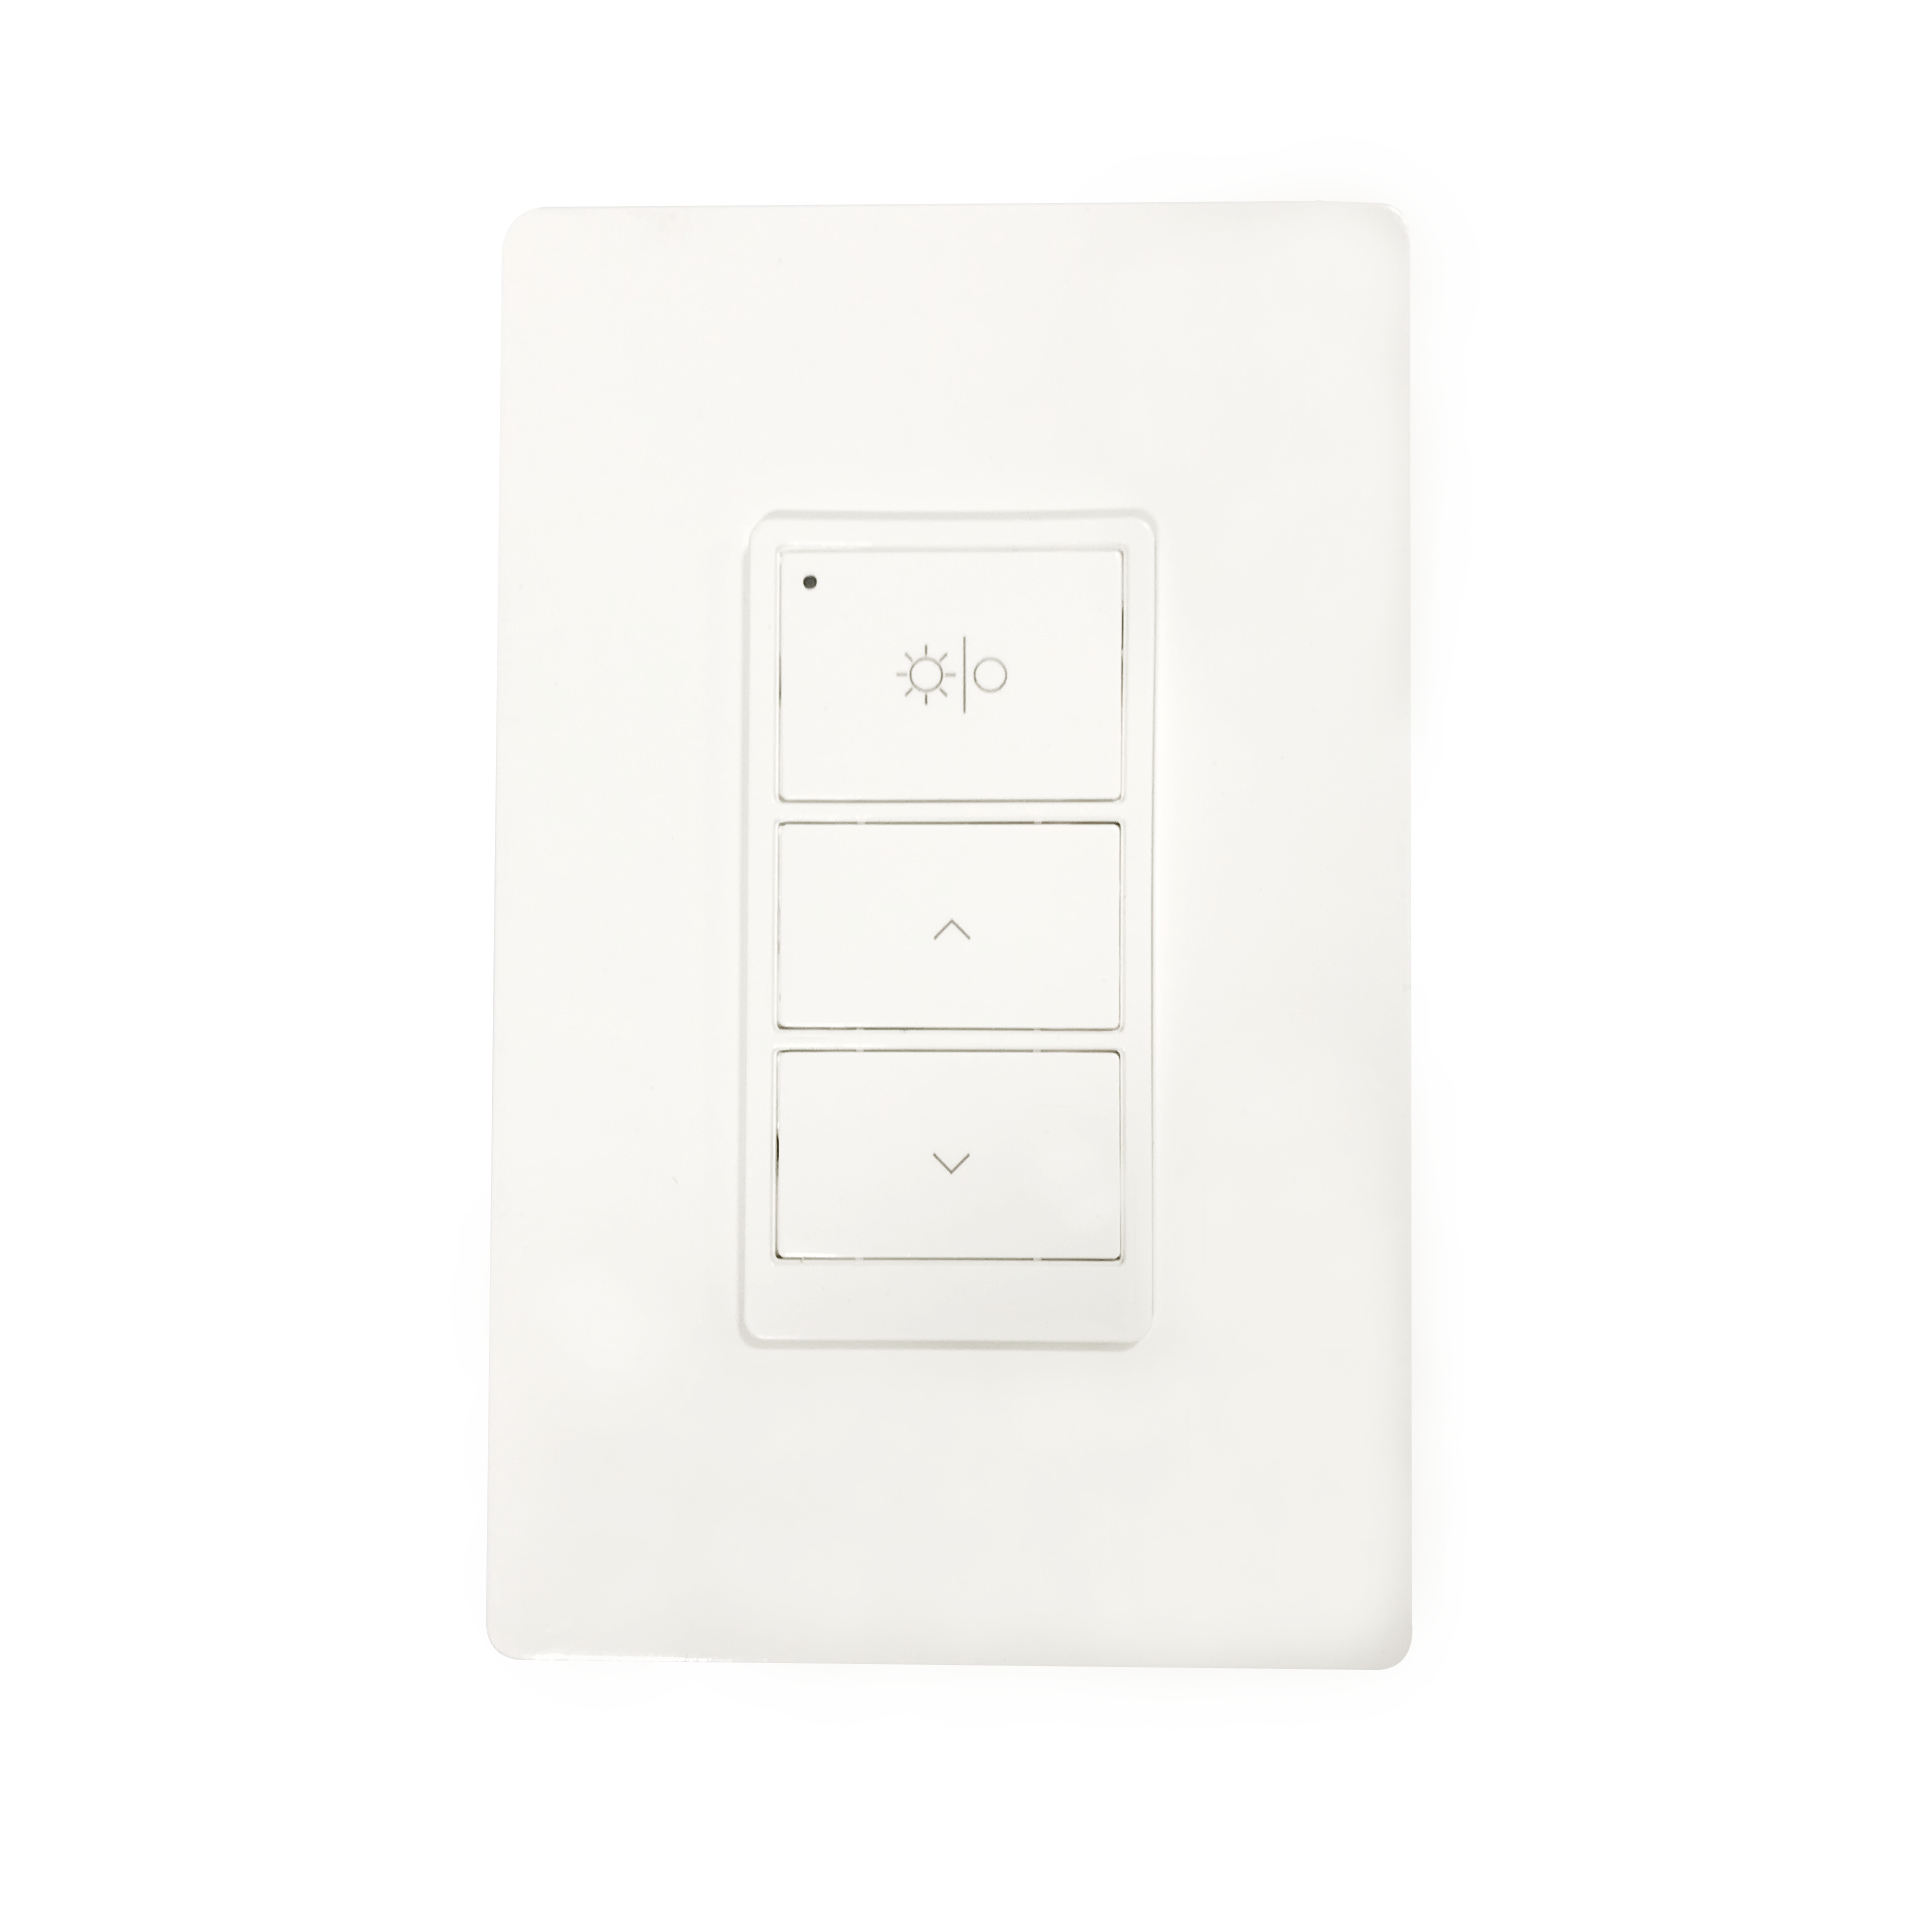 Remote control Dimmer Switch1.png